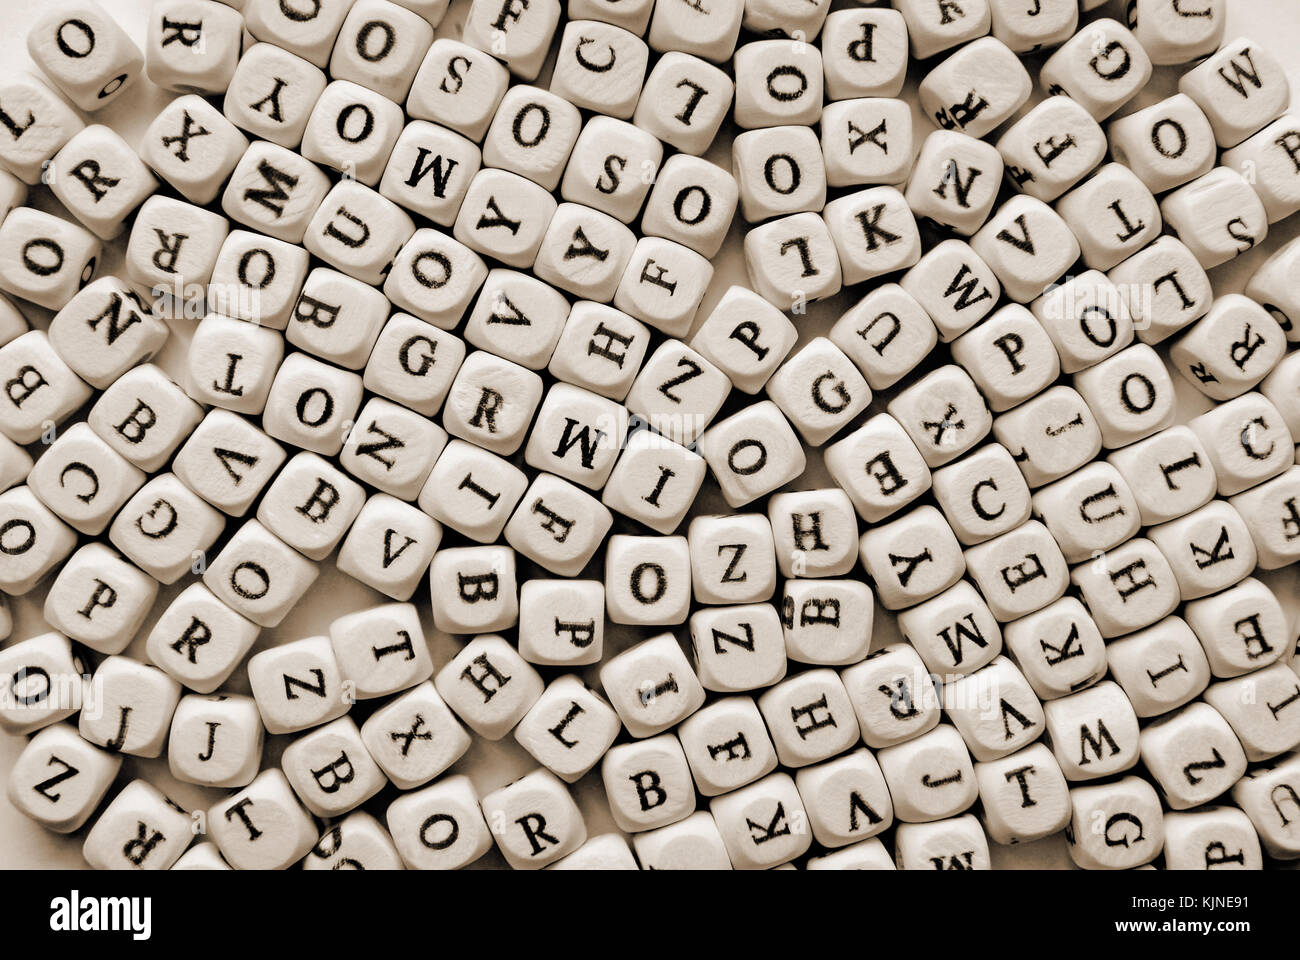 various letters background - Stock Image